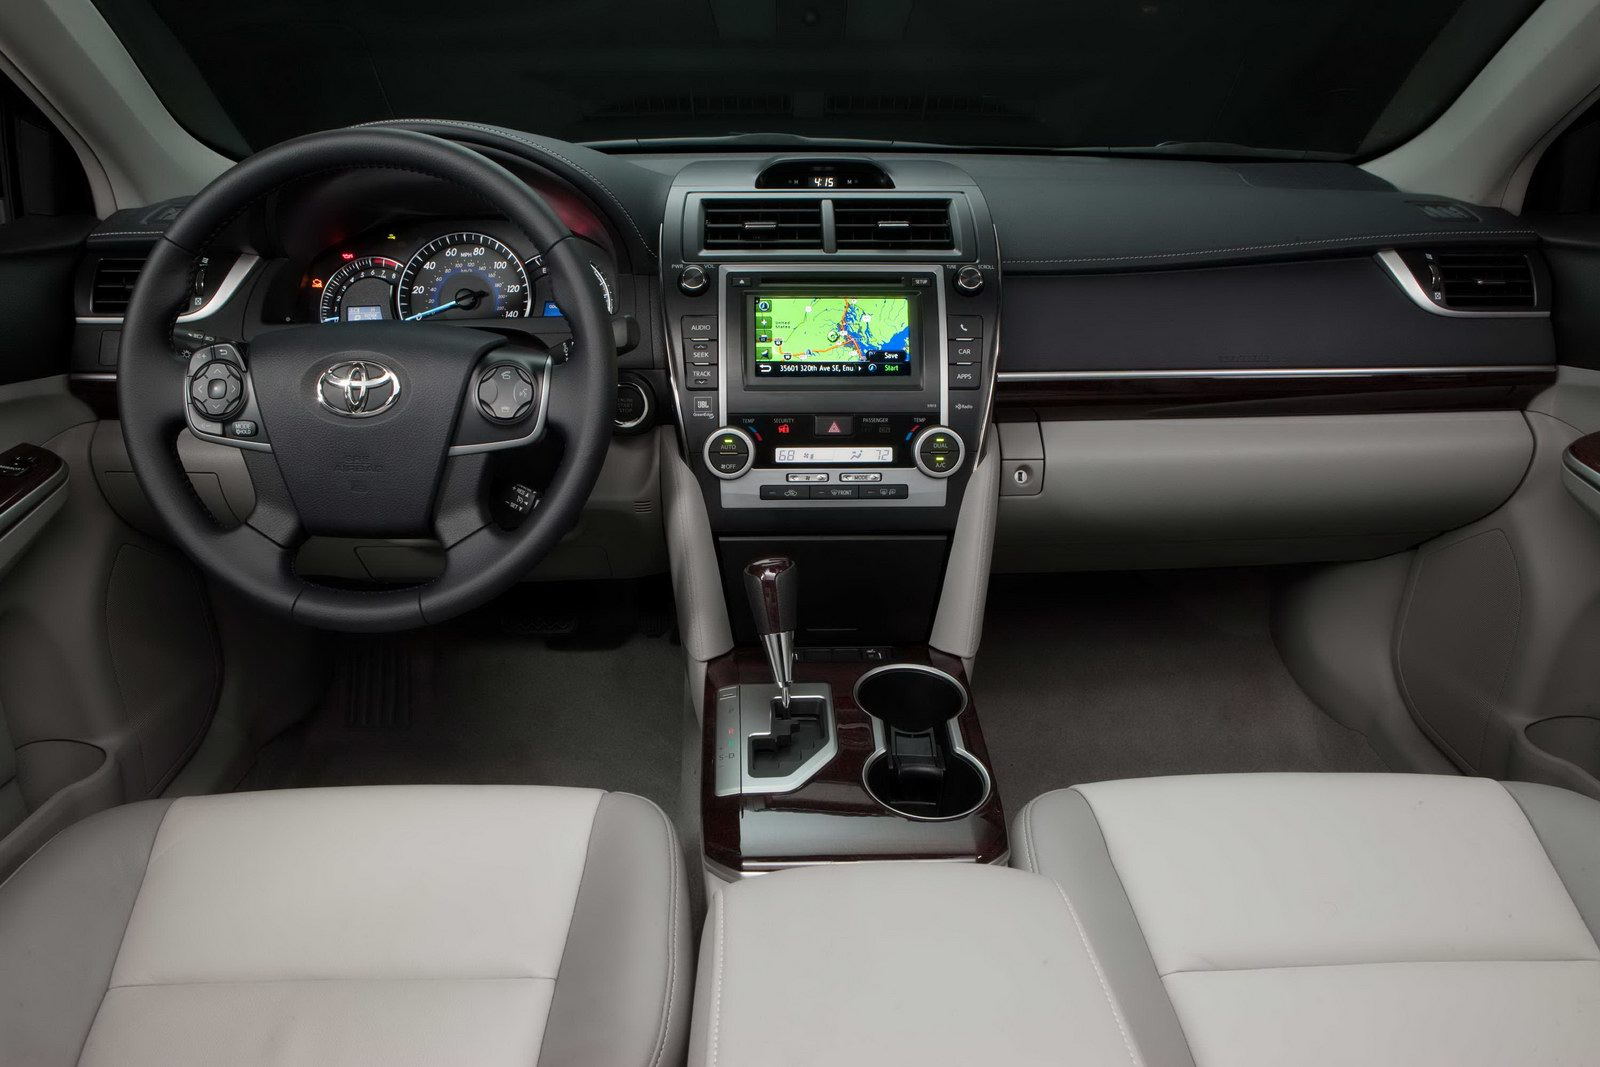 2012_toyota_camry_official_overseas_13